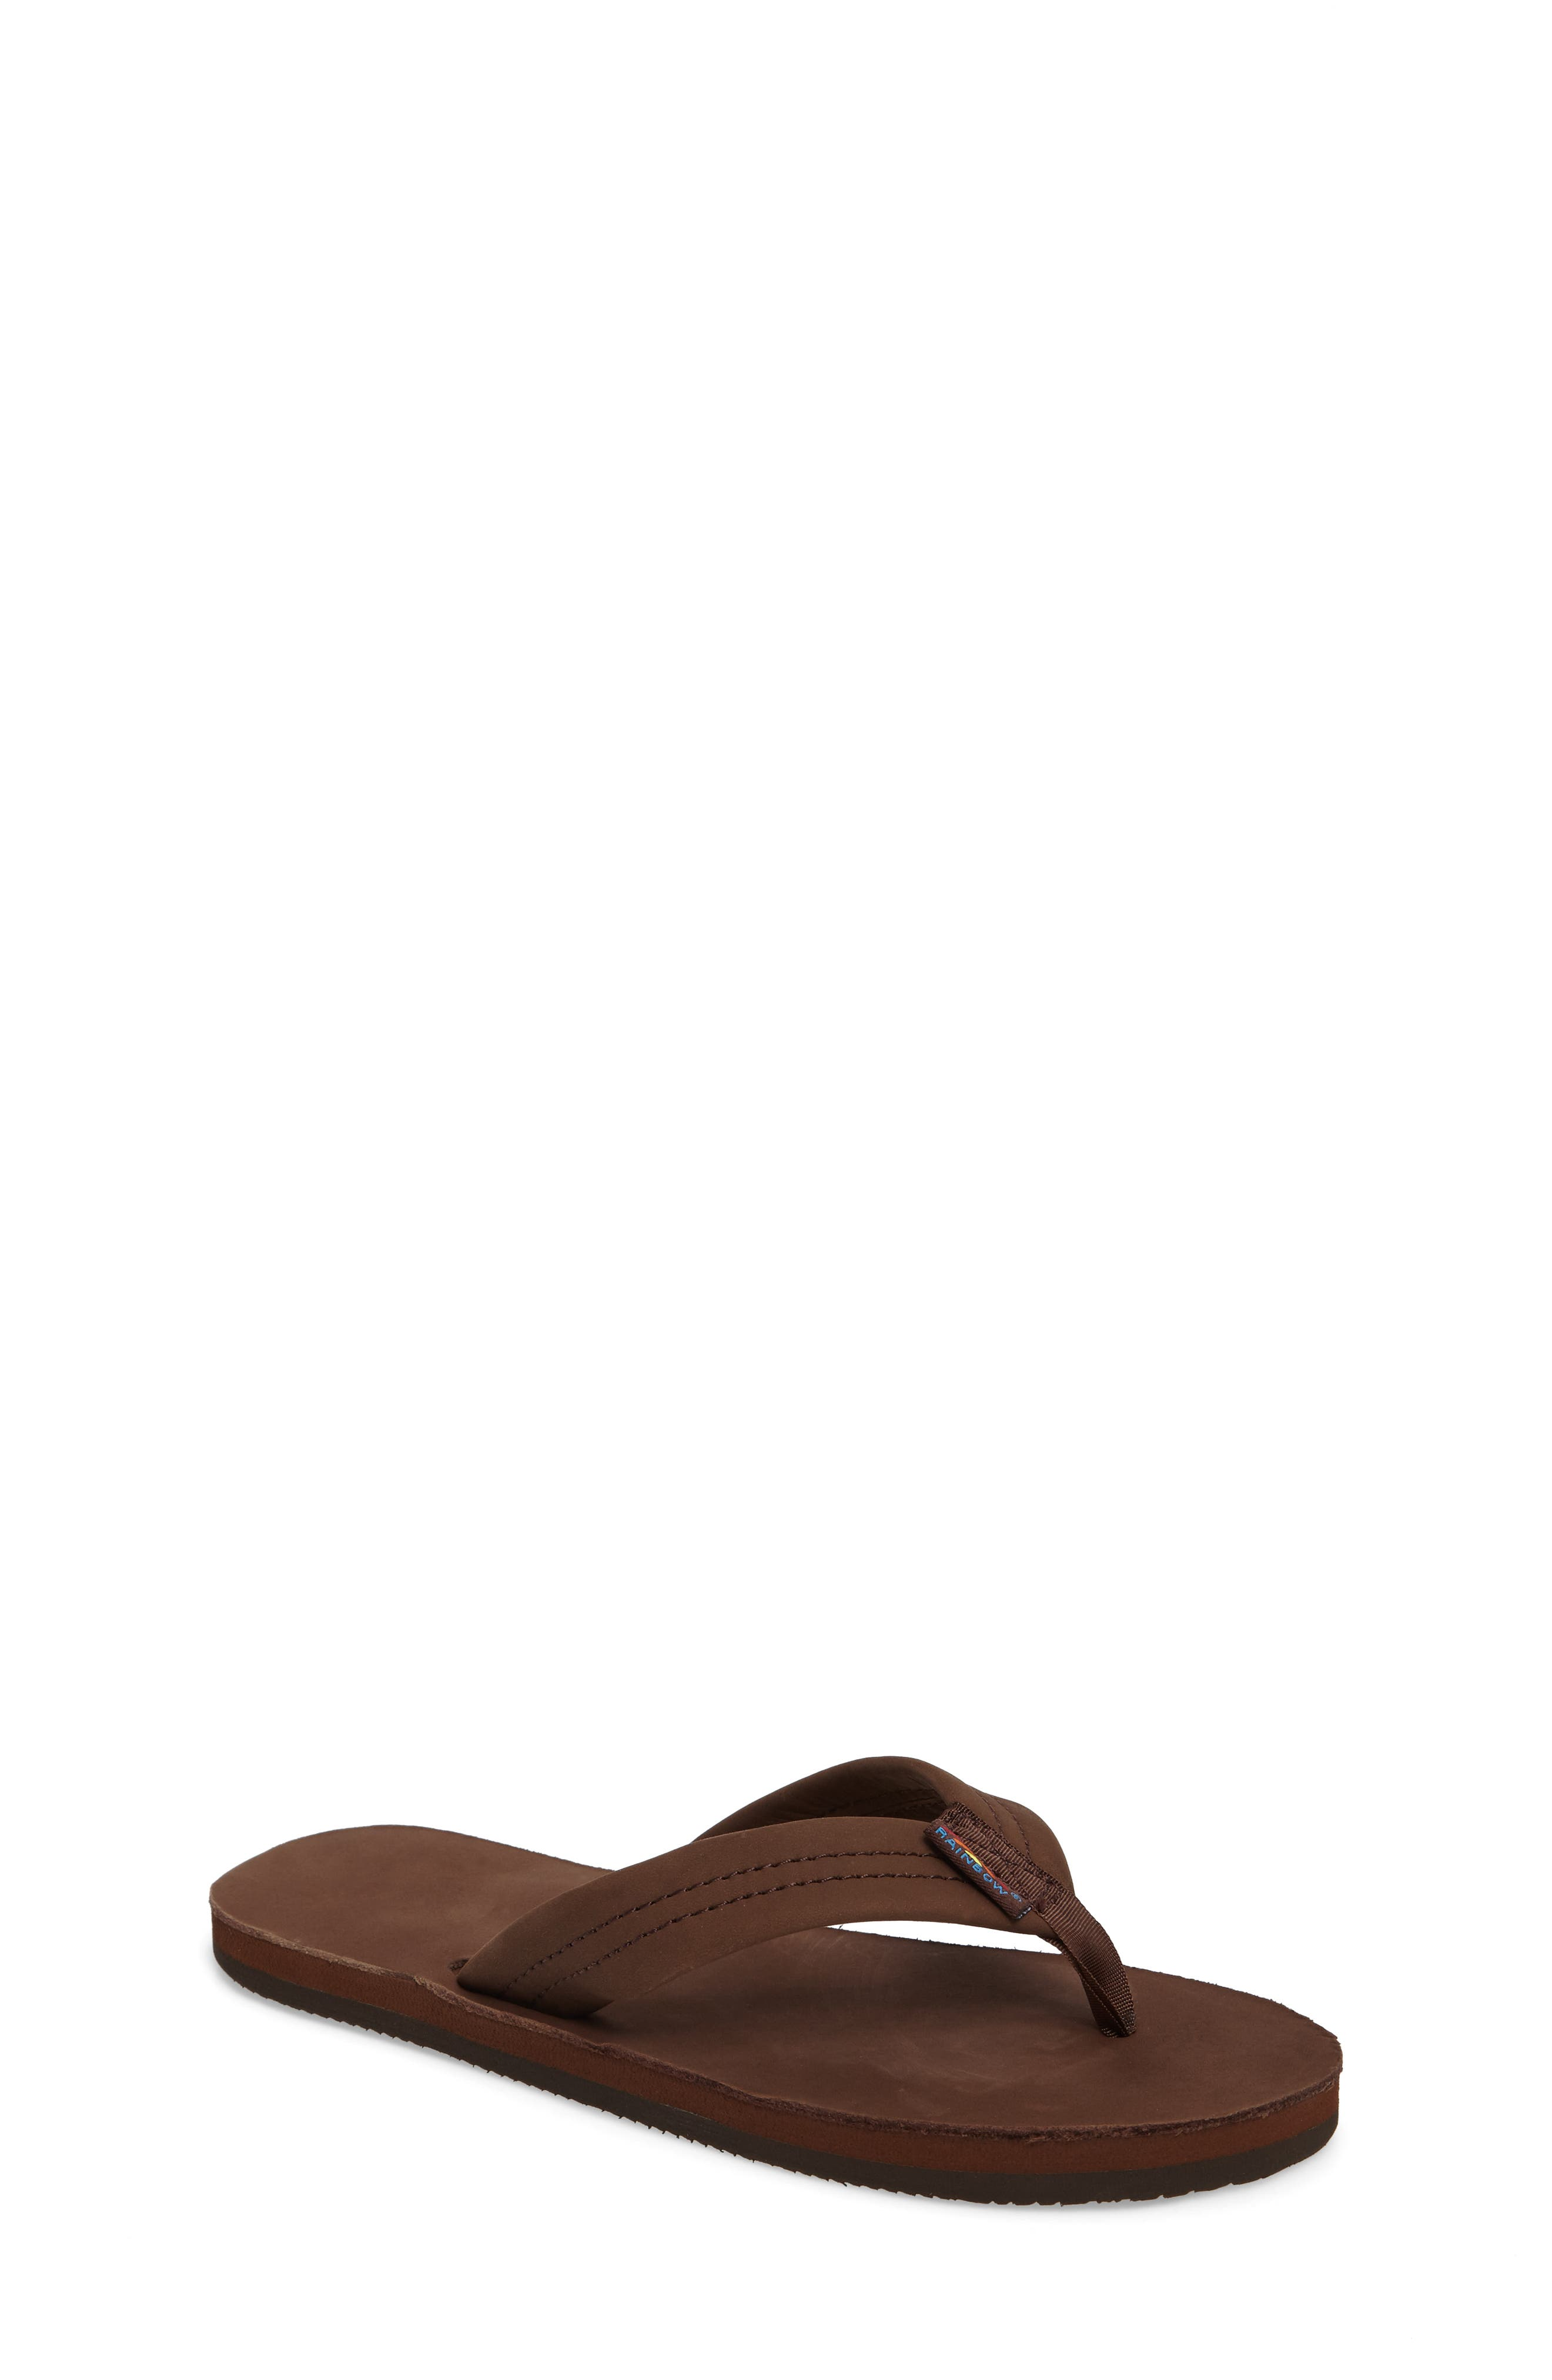 Rainbow Leather Sandal, Main, color, EXPRESSO